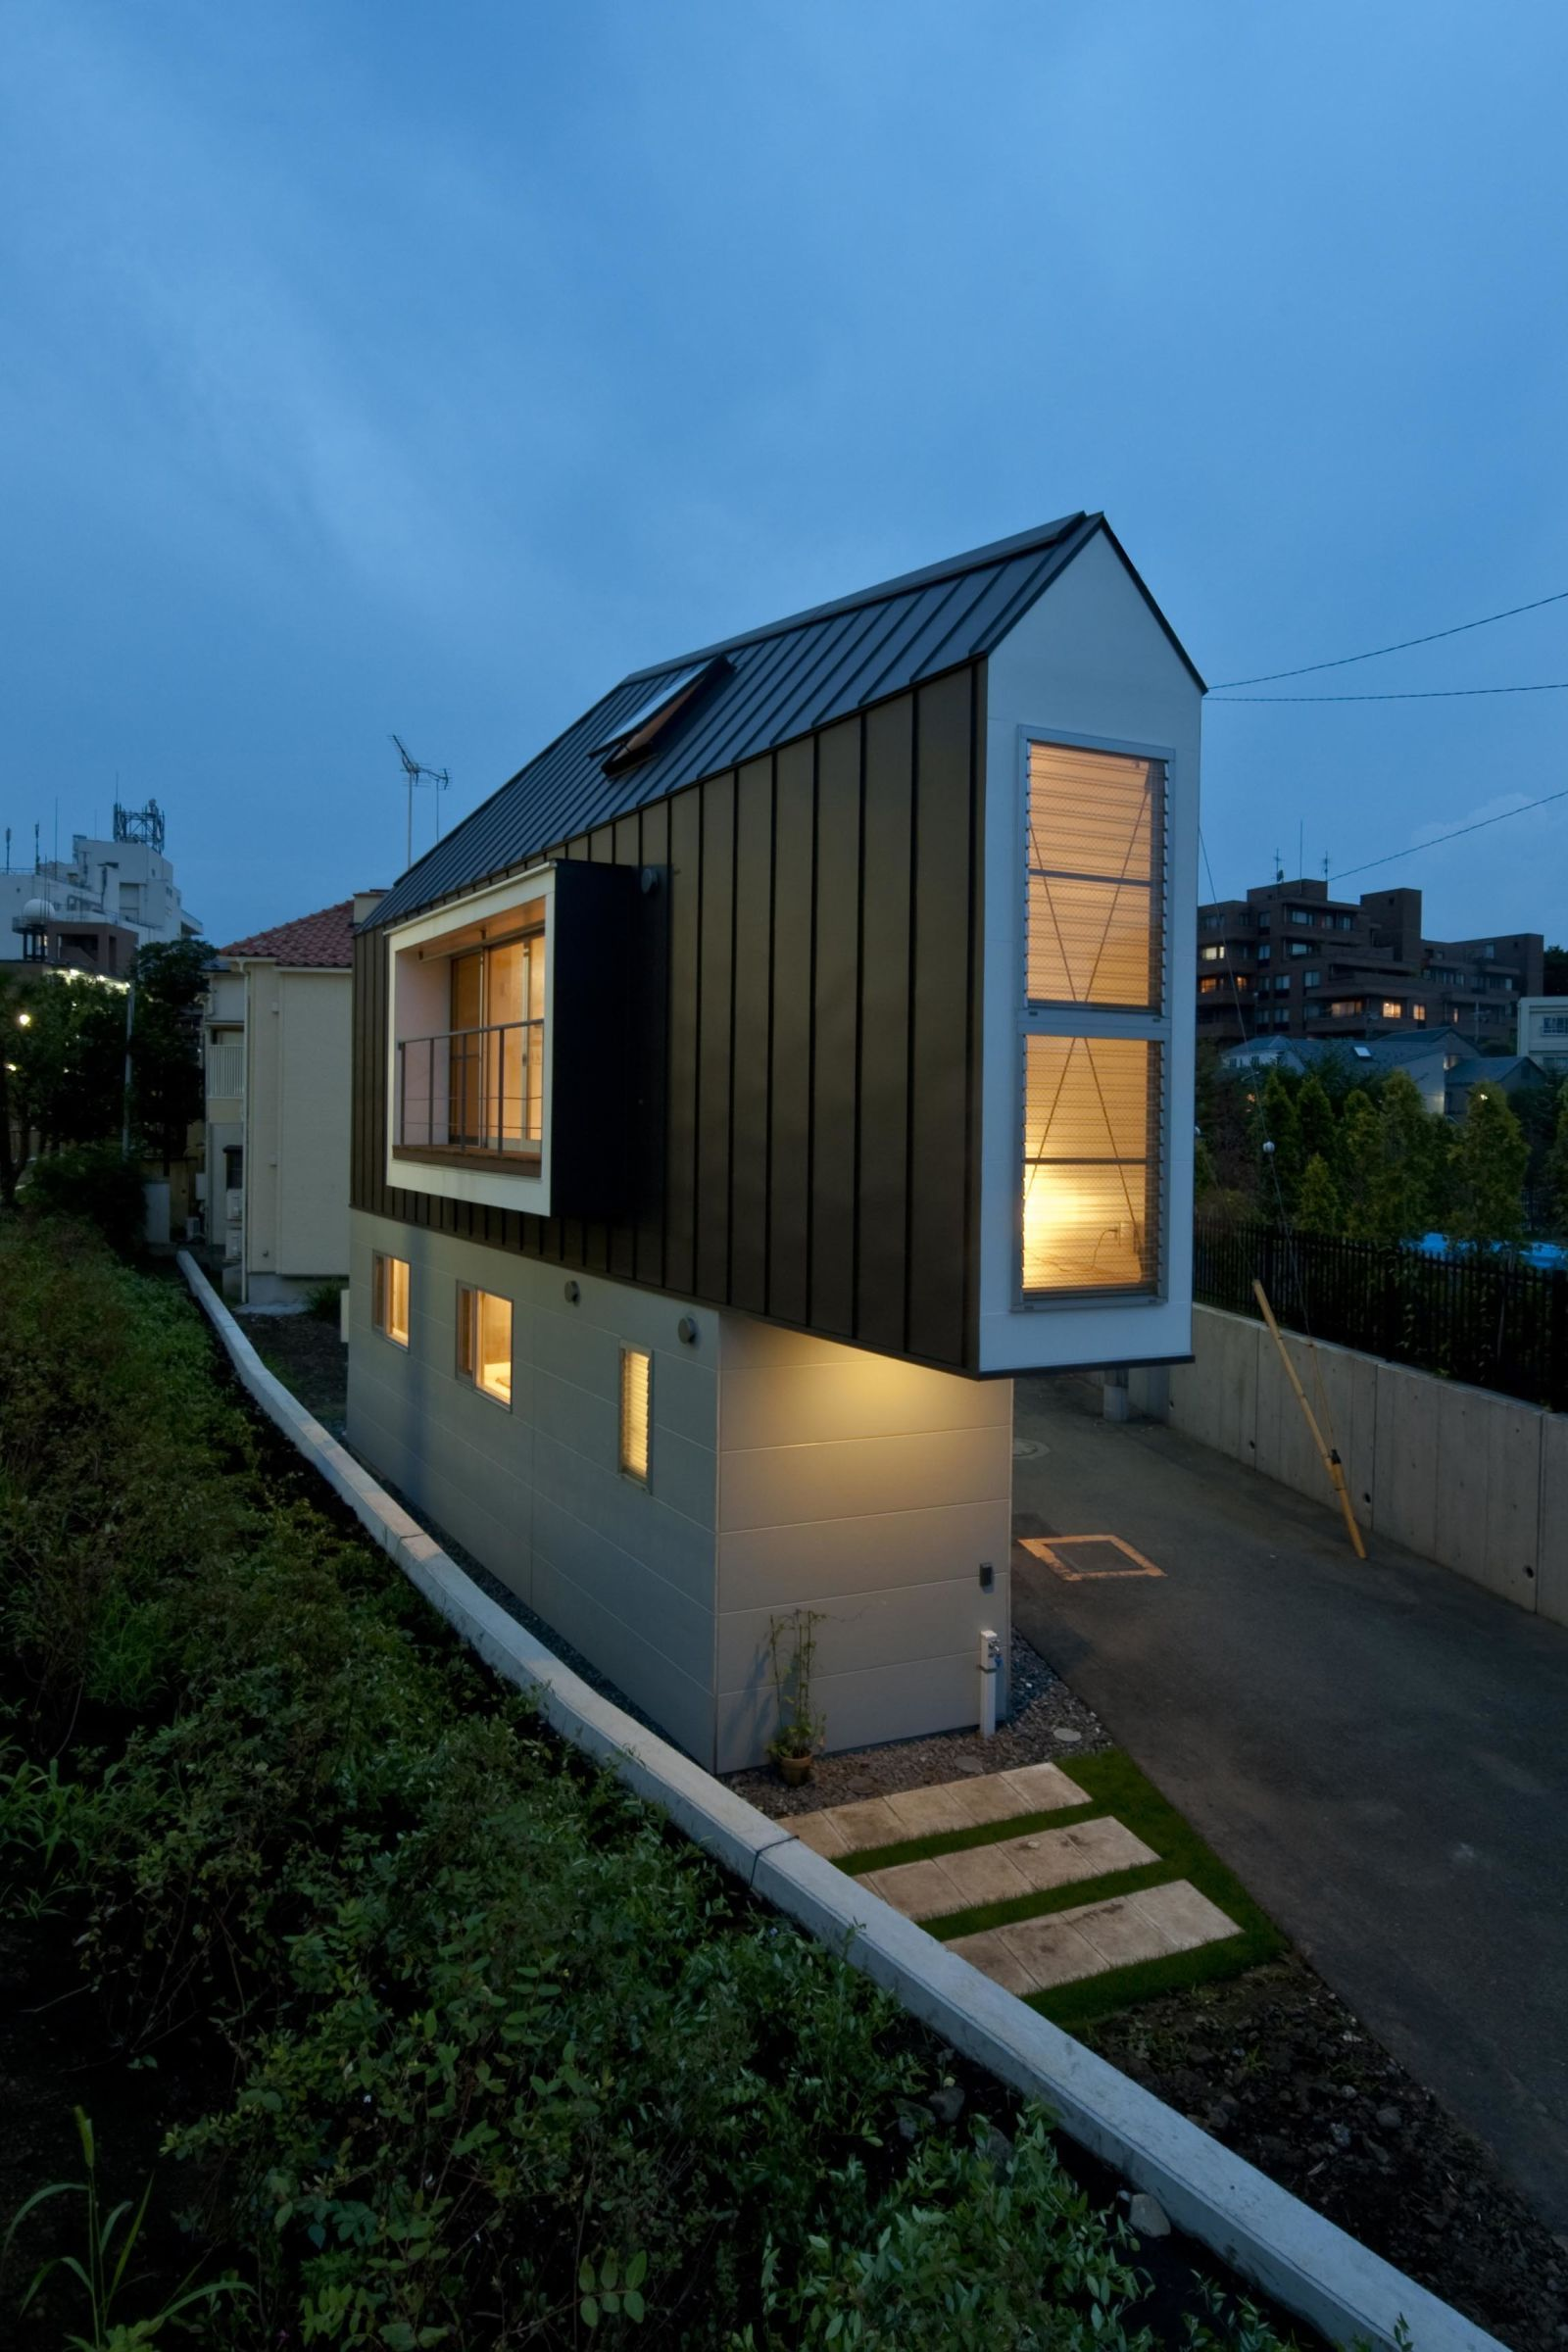 This Extremely Narrow House Is Surprisingly Spacious On The Inside Small House Design Narrow House Japanese House